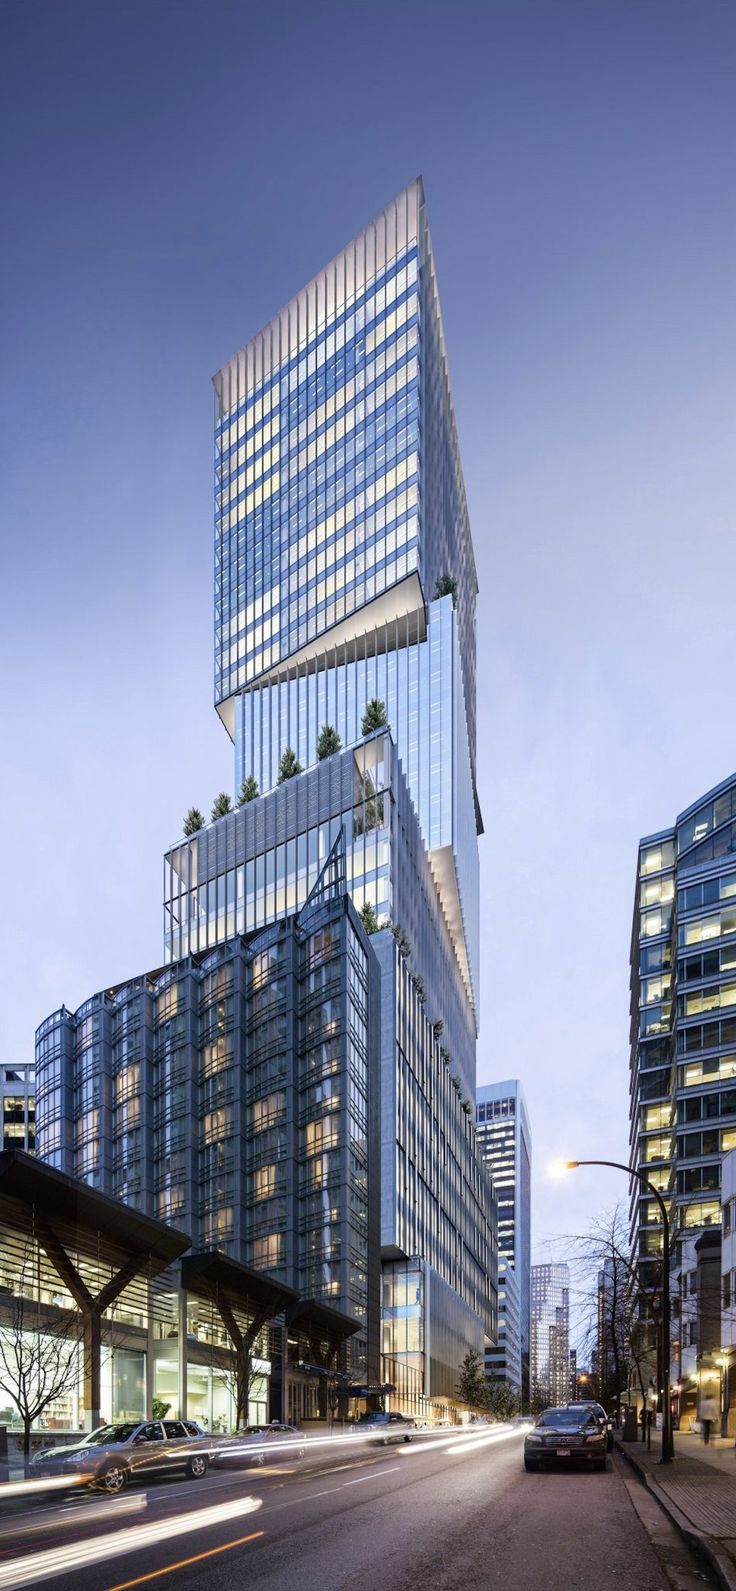 550-foot-tall 'stacked box' office tower proposed for downtown Vancouver | Daily Hive Vancouver